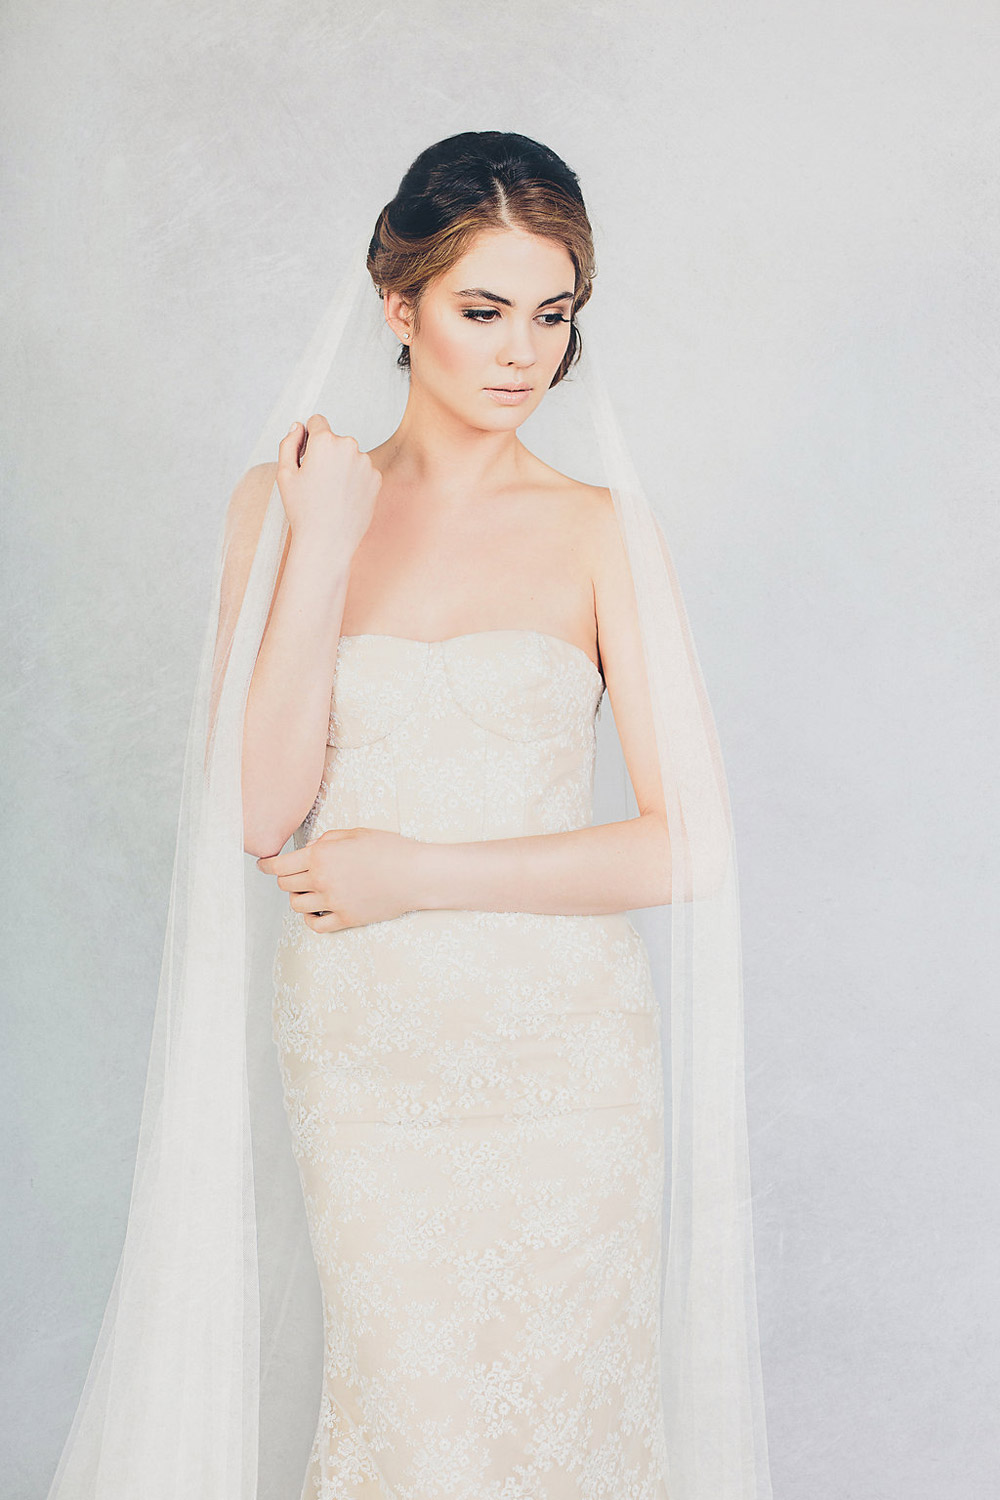 Bella and Soft Tulle Veil – Elizabeth Stuart Spring 2015 Collection. www.theweddingnotebook.com